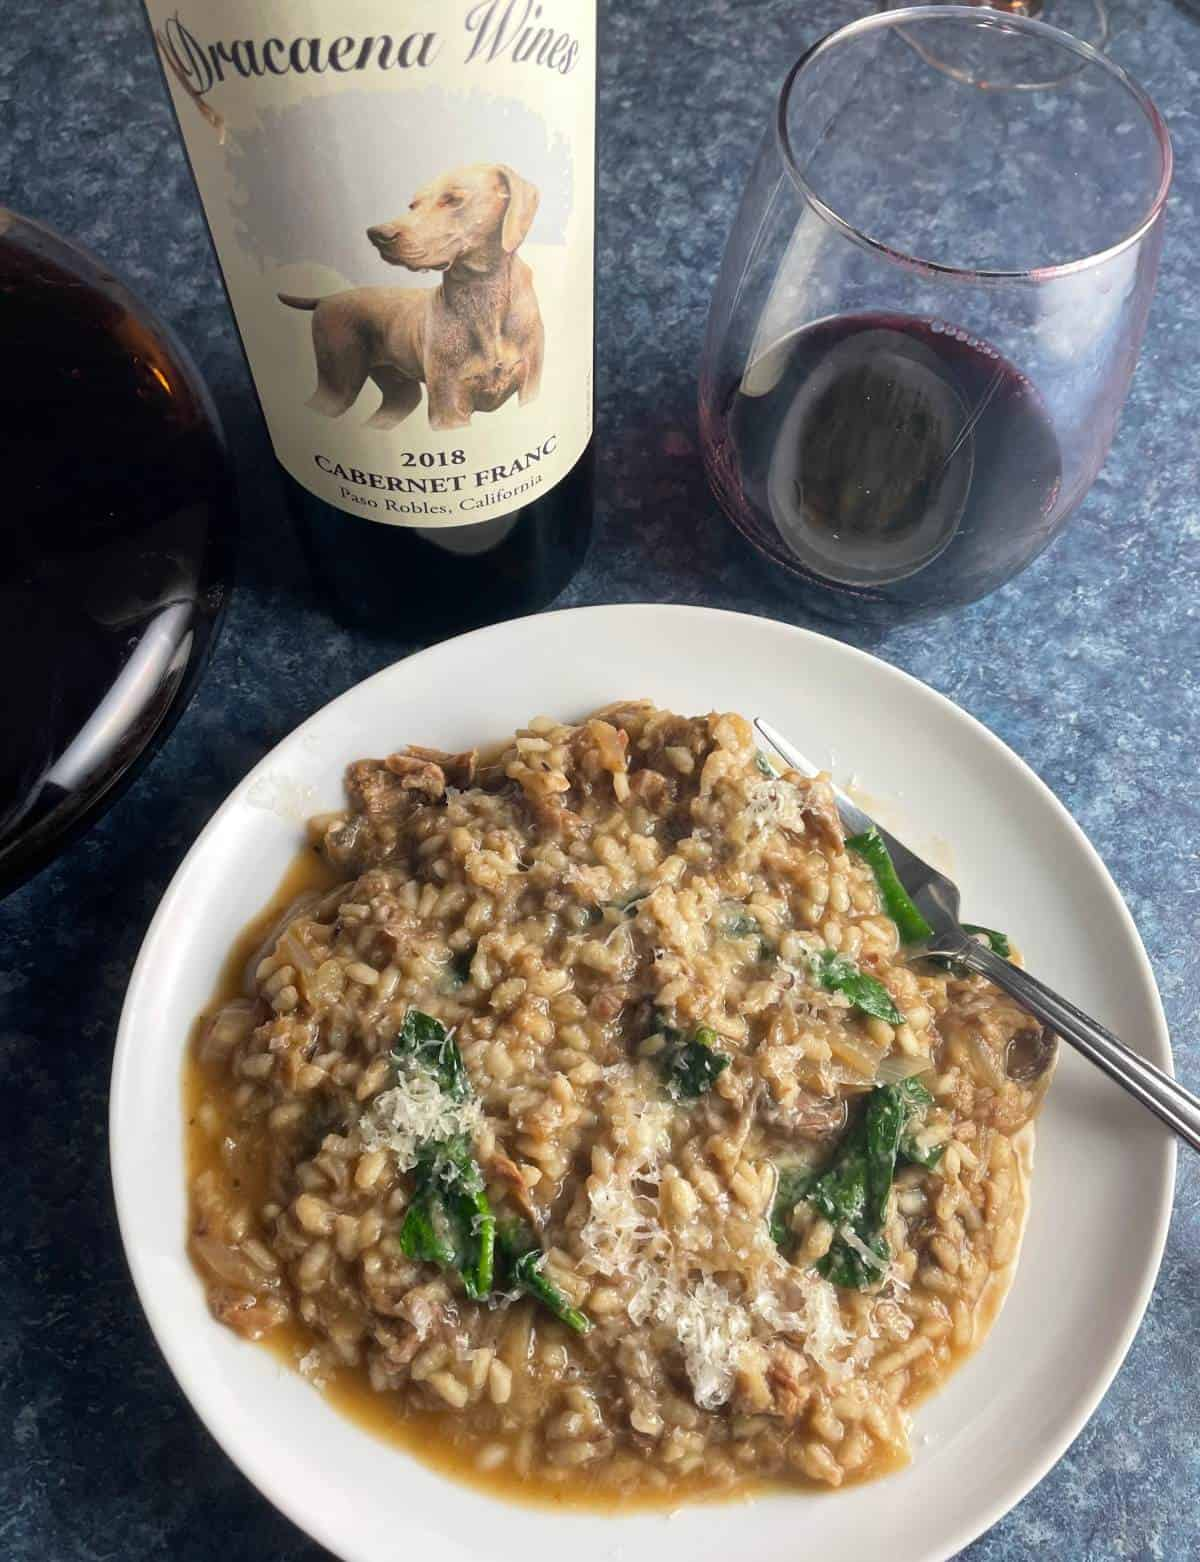 plate of pulled pork risotto served with red wine.